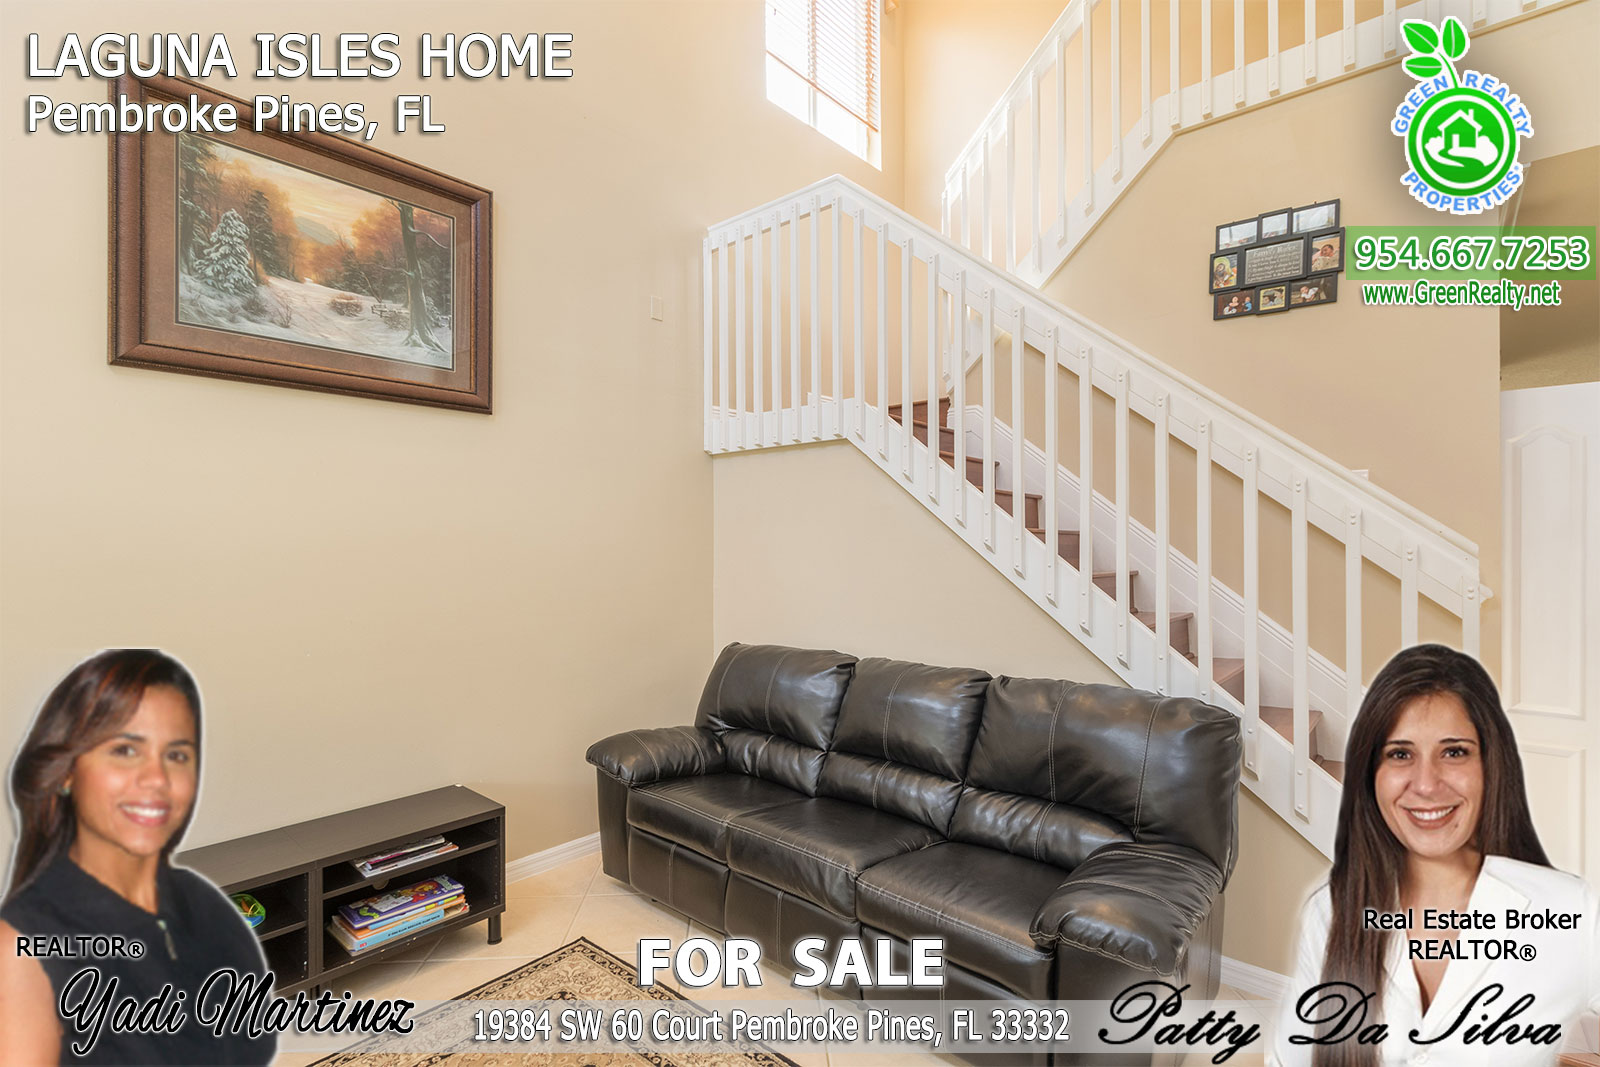 Pembroke-pines-laguna-isles-home-for-sale-by-green-realty-properties-1